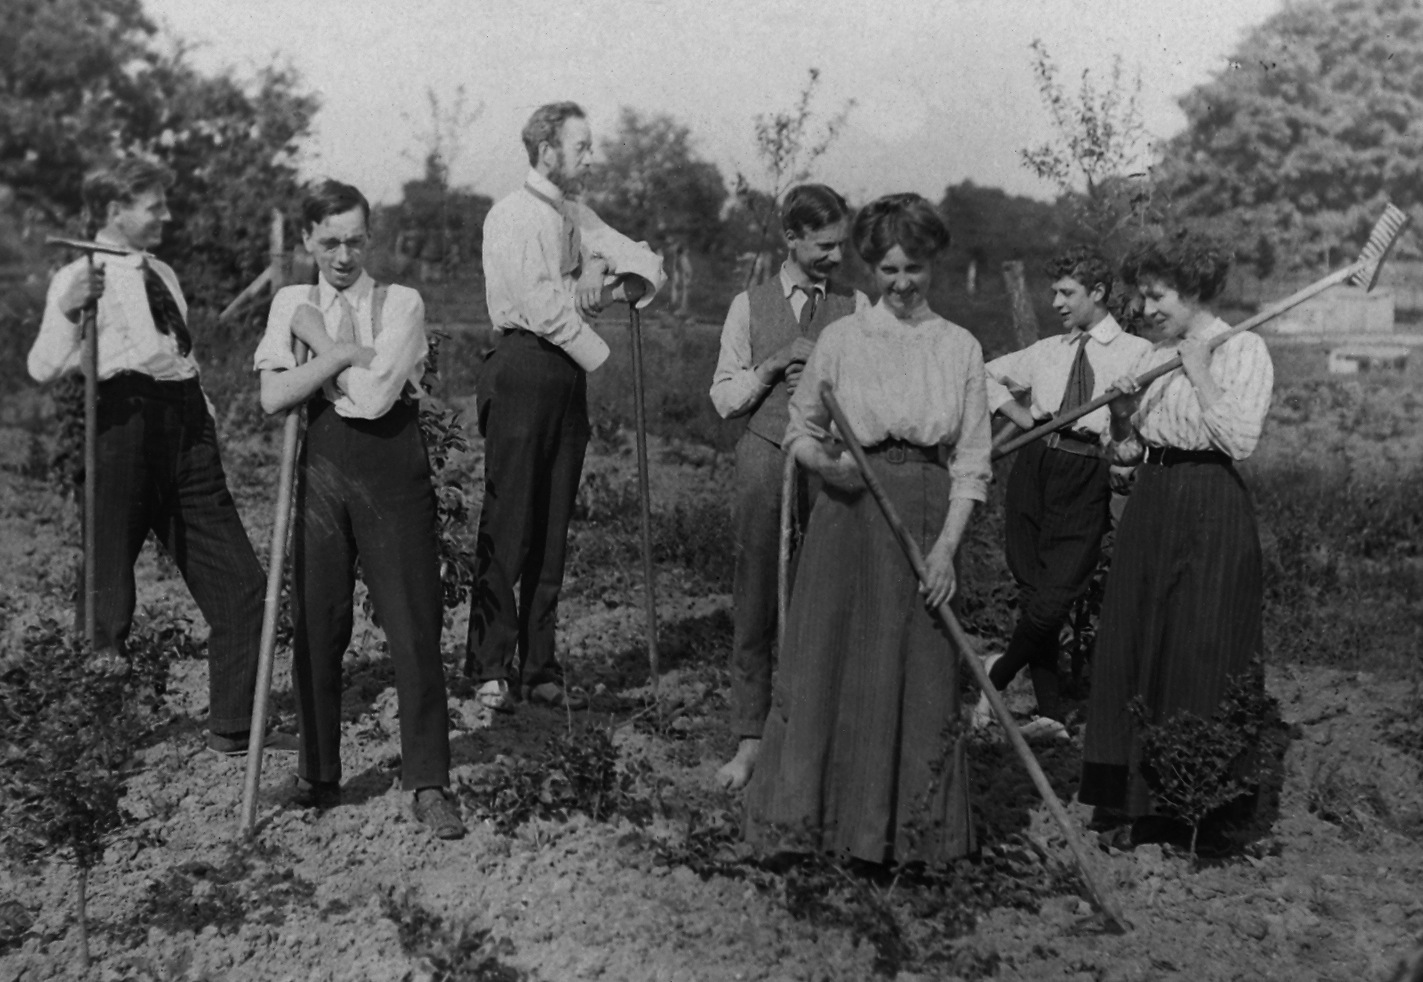 men and women posing in garden with gardening tools